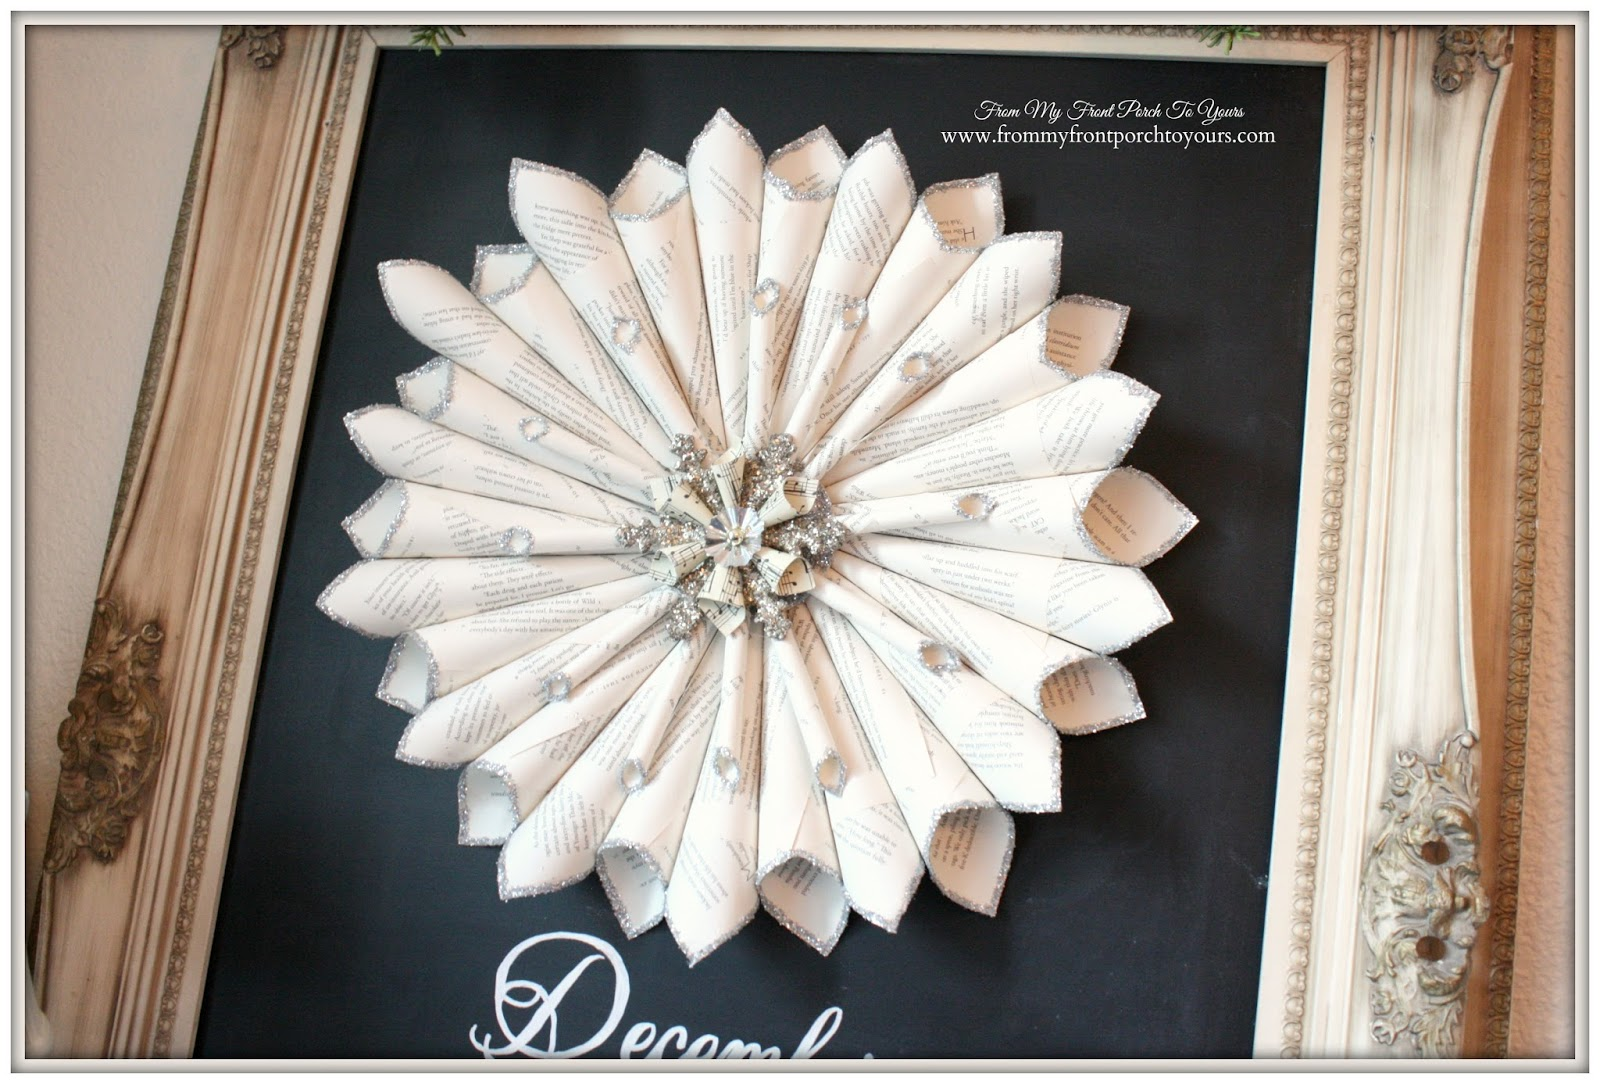 Book Page Wreath-French Farmhouse Vintage Christmas Dining Room- From My Front Porch To Yours